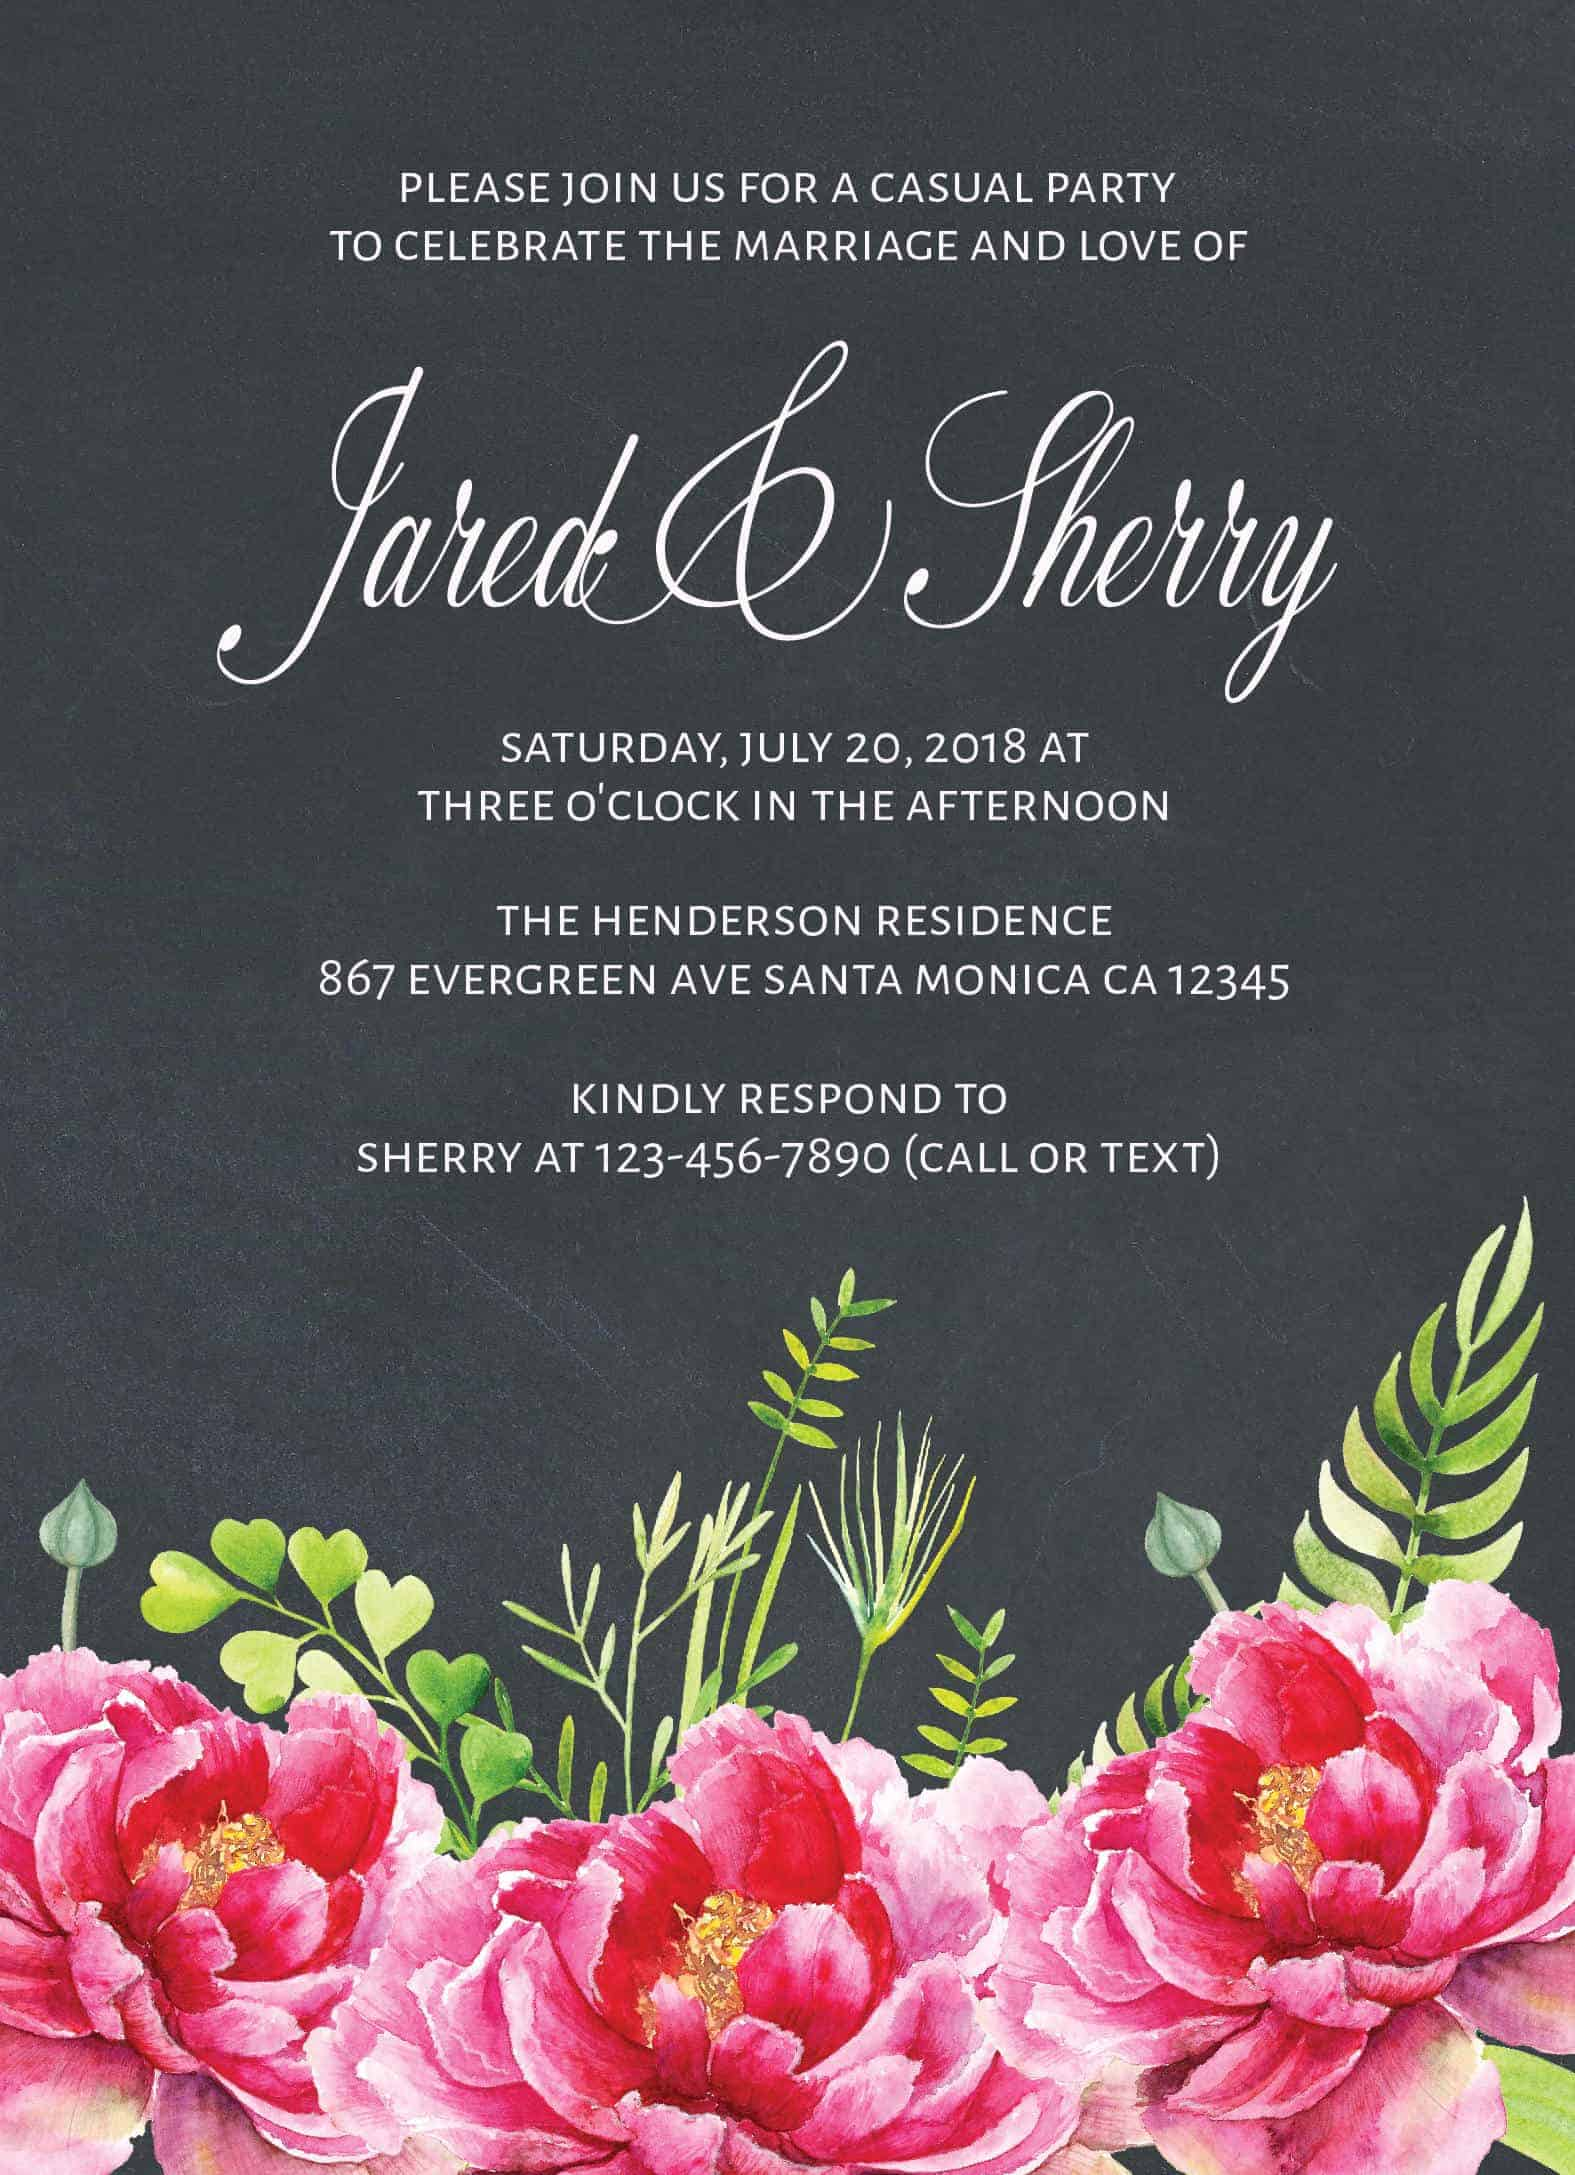 Chalkboard Wedding Reception Invitation Cards, Casual Party, BBQ Party for Elopement Wedding Reception Cards elopement106